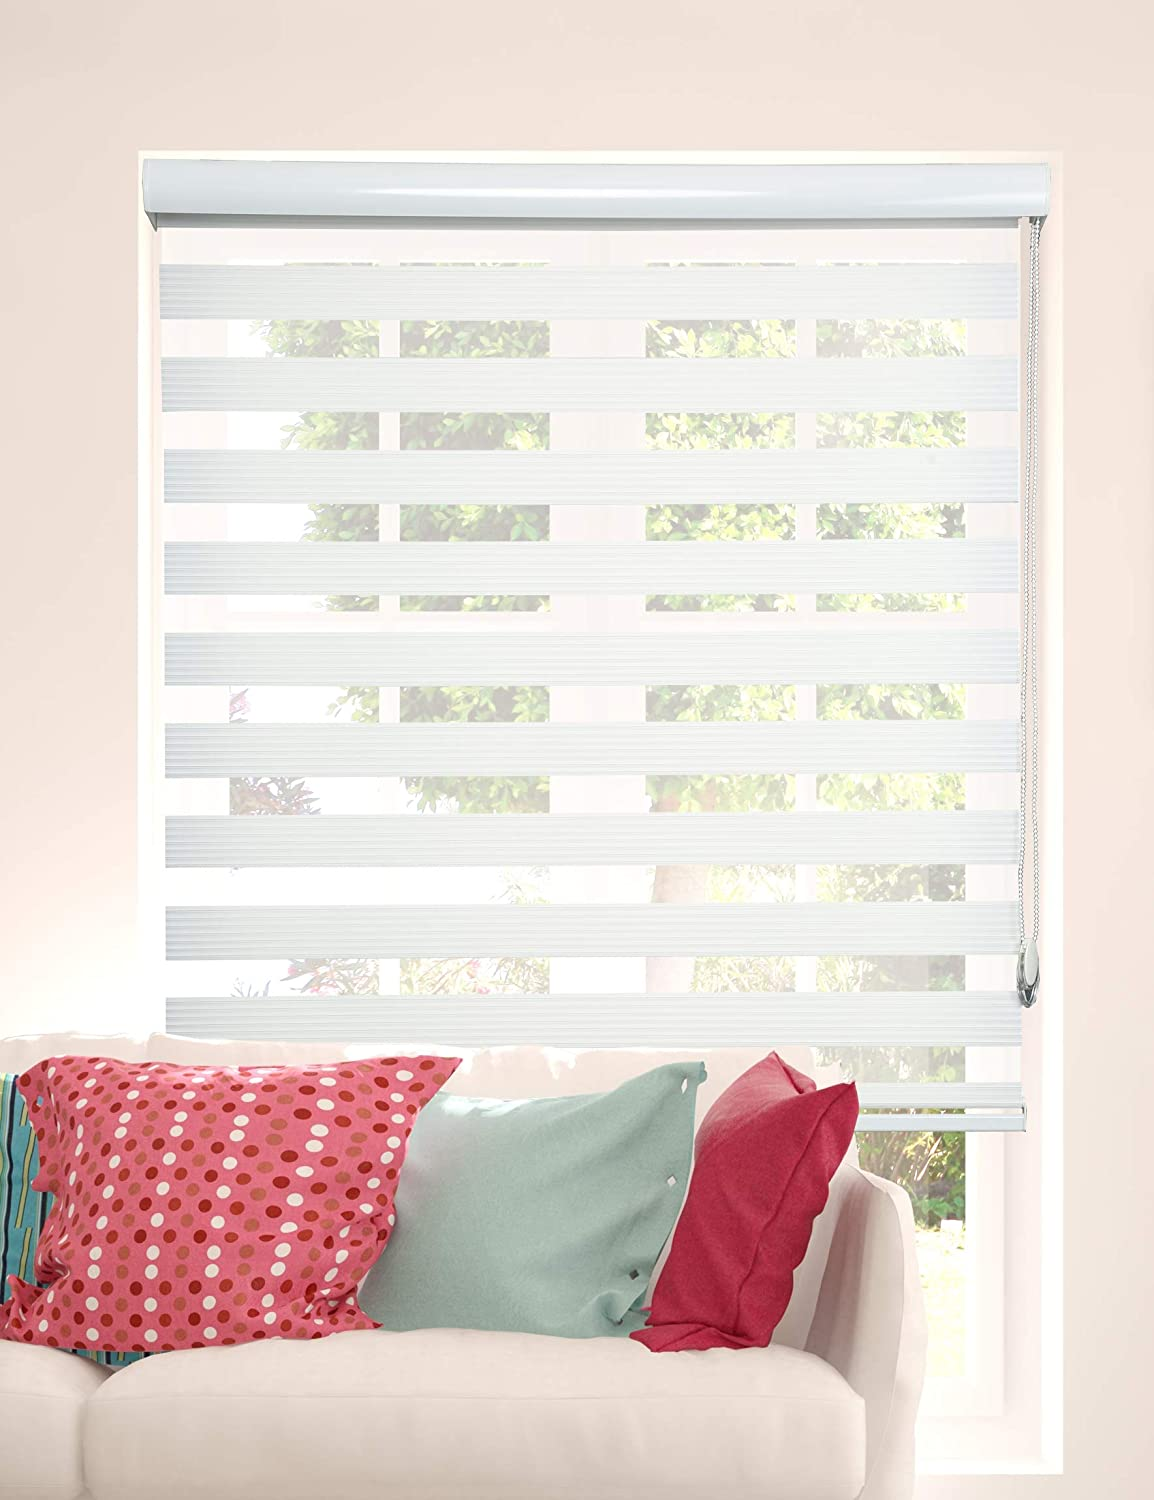 ShadesU Custom Made Size Zebra Dual Layer Roller Sheer Shades Blinds Light Filtering Window Treatments Privacy Light Control for Day and Night (White Color) (Width 52inch) (Height 47inch)